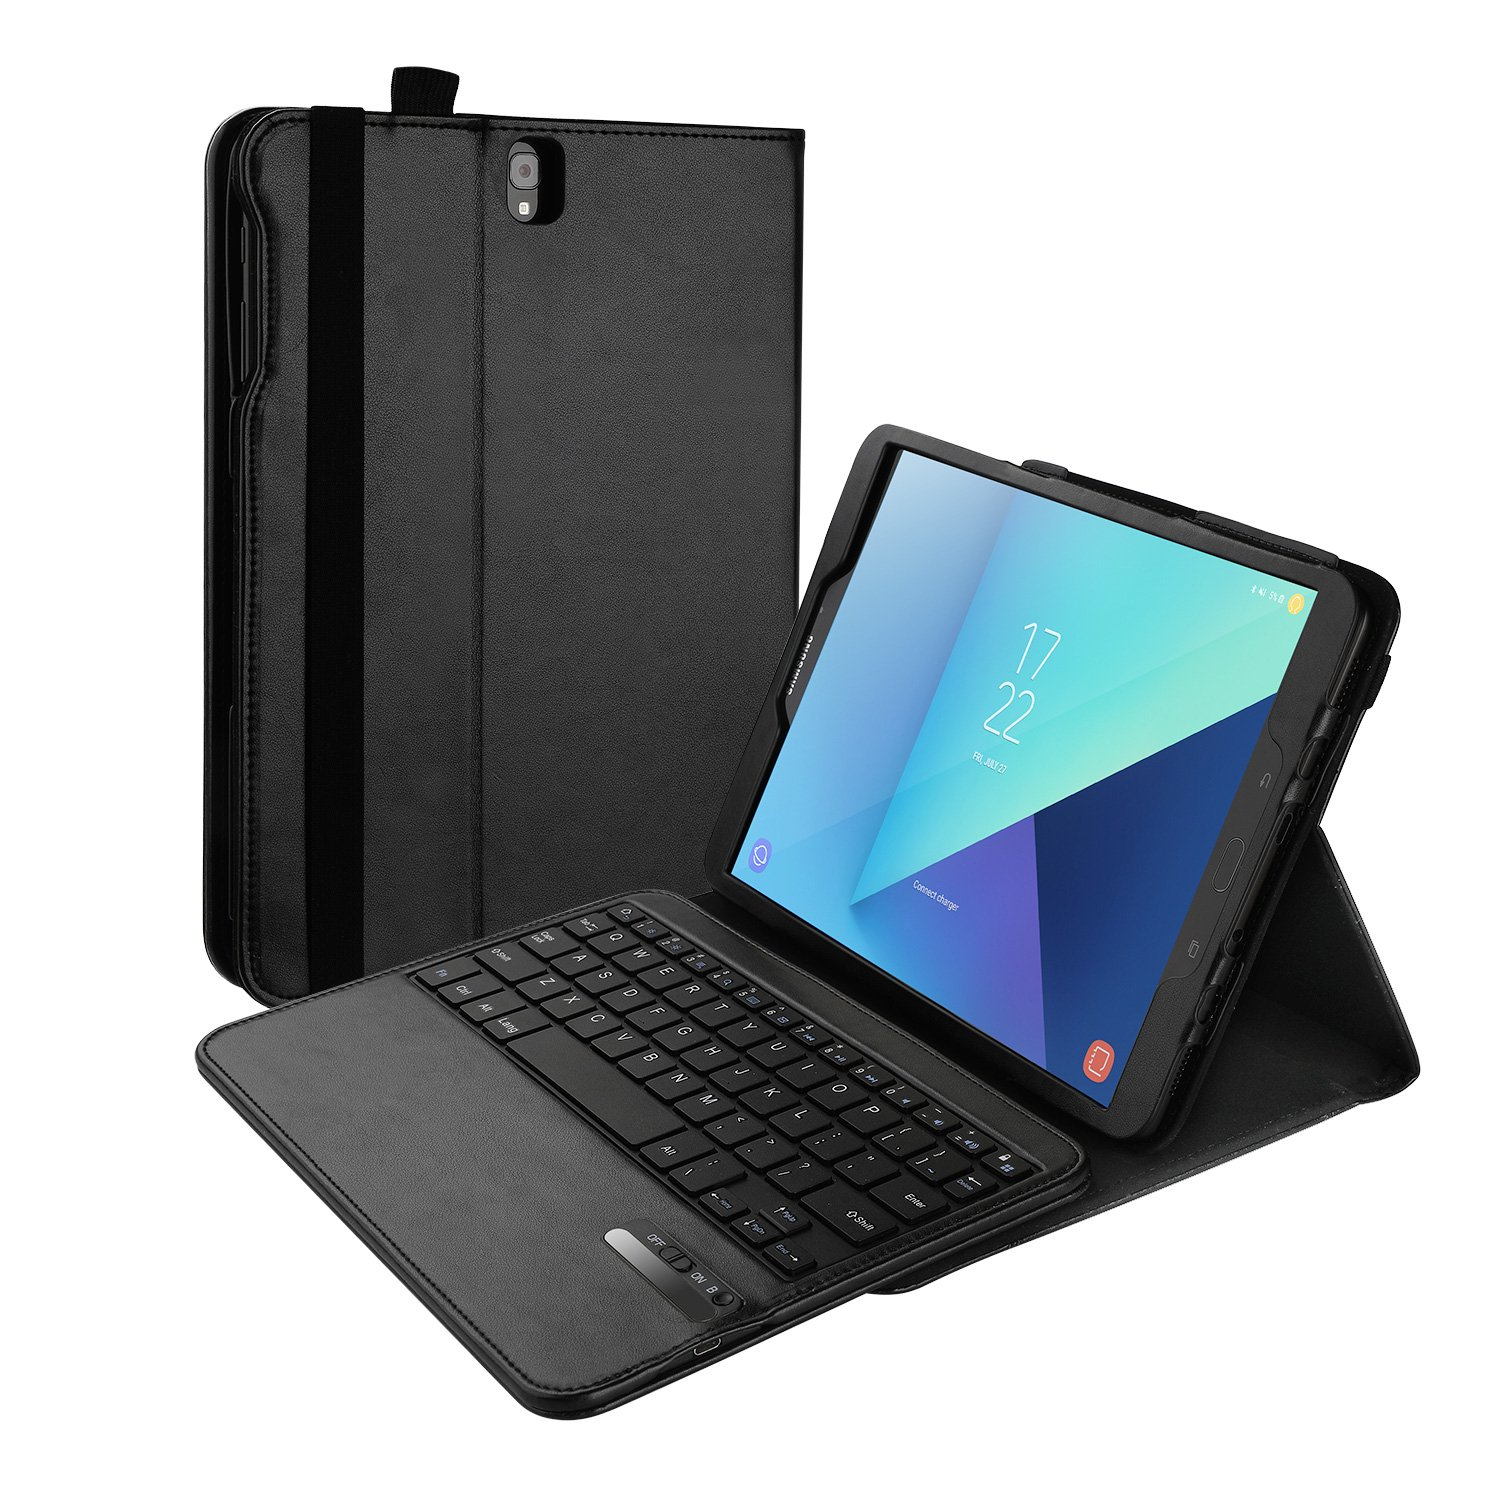 Vivefox Samsung Galaxy Tab S2 9.7 / S3 9.7 Keyboard Case, Detachable Wireless Keyboard Stand Case/Cover for Galaxy Tab S2 9.7 Tablet / S3 9.7 Inch Tablet, with Auto Sleep/Wake, Pen Holder, Black